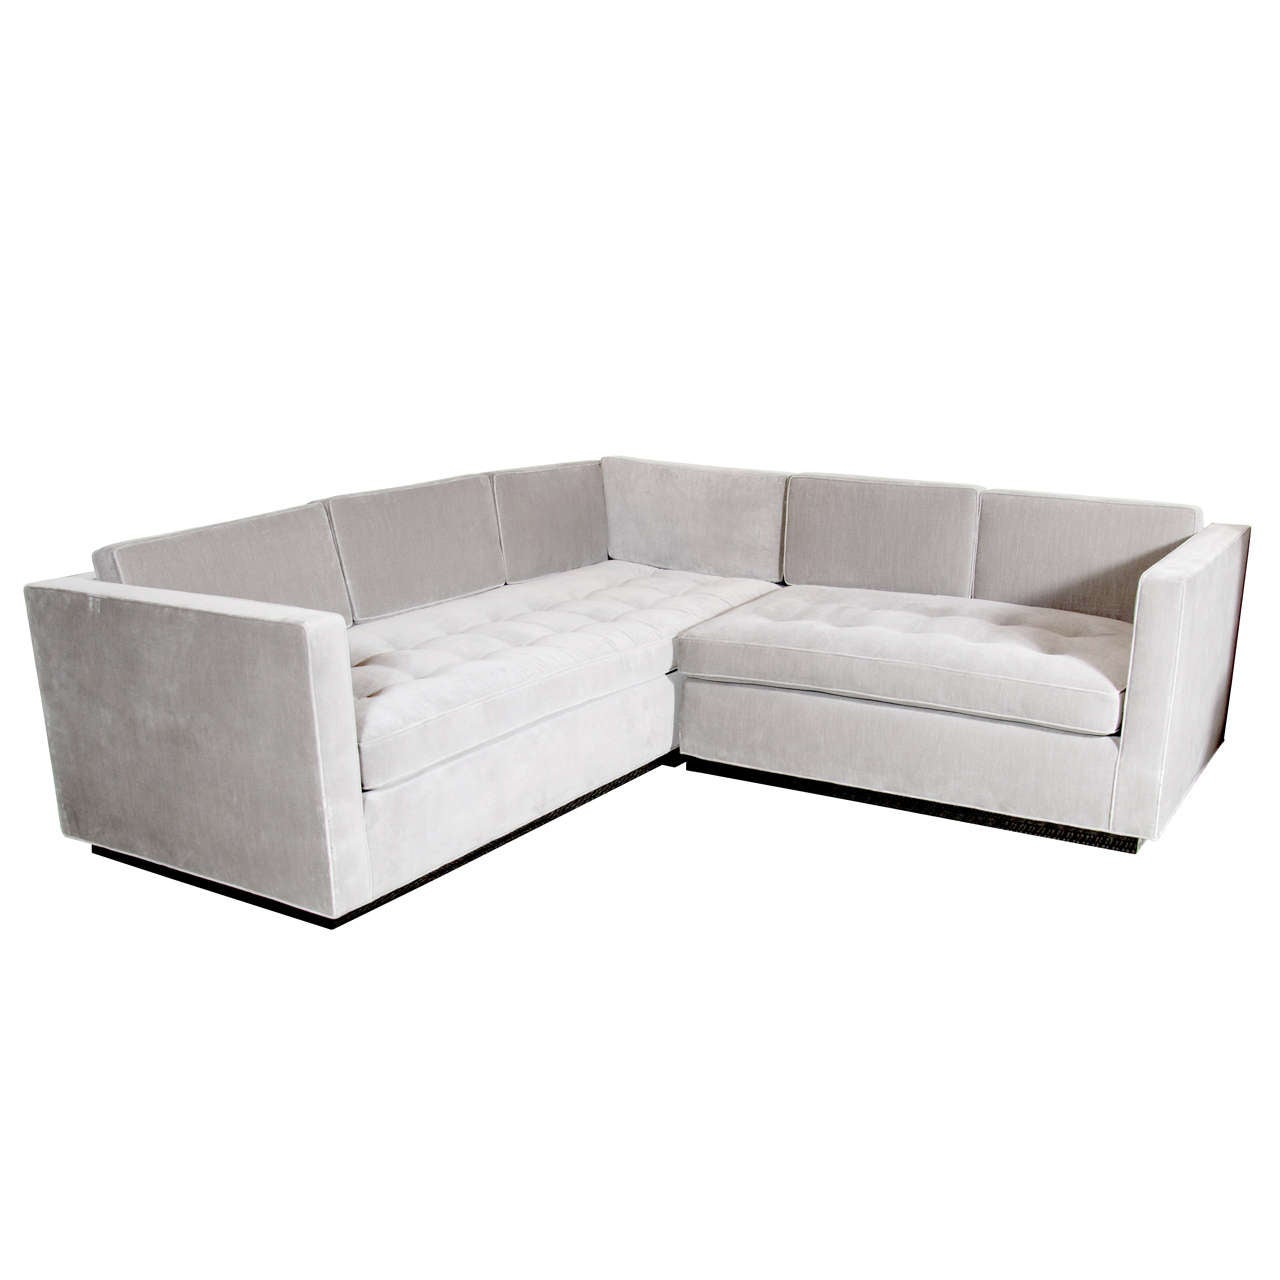 Luxe Modernist Sectional Sofa With Biscuit Tufting In Grey Velvet 1